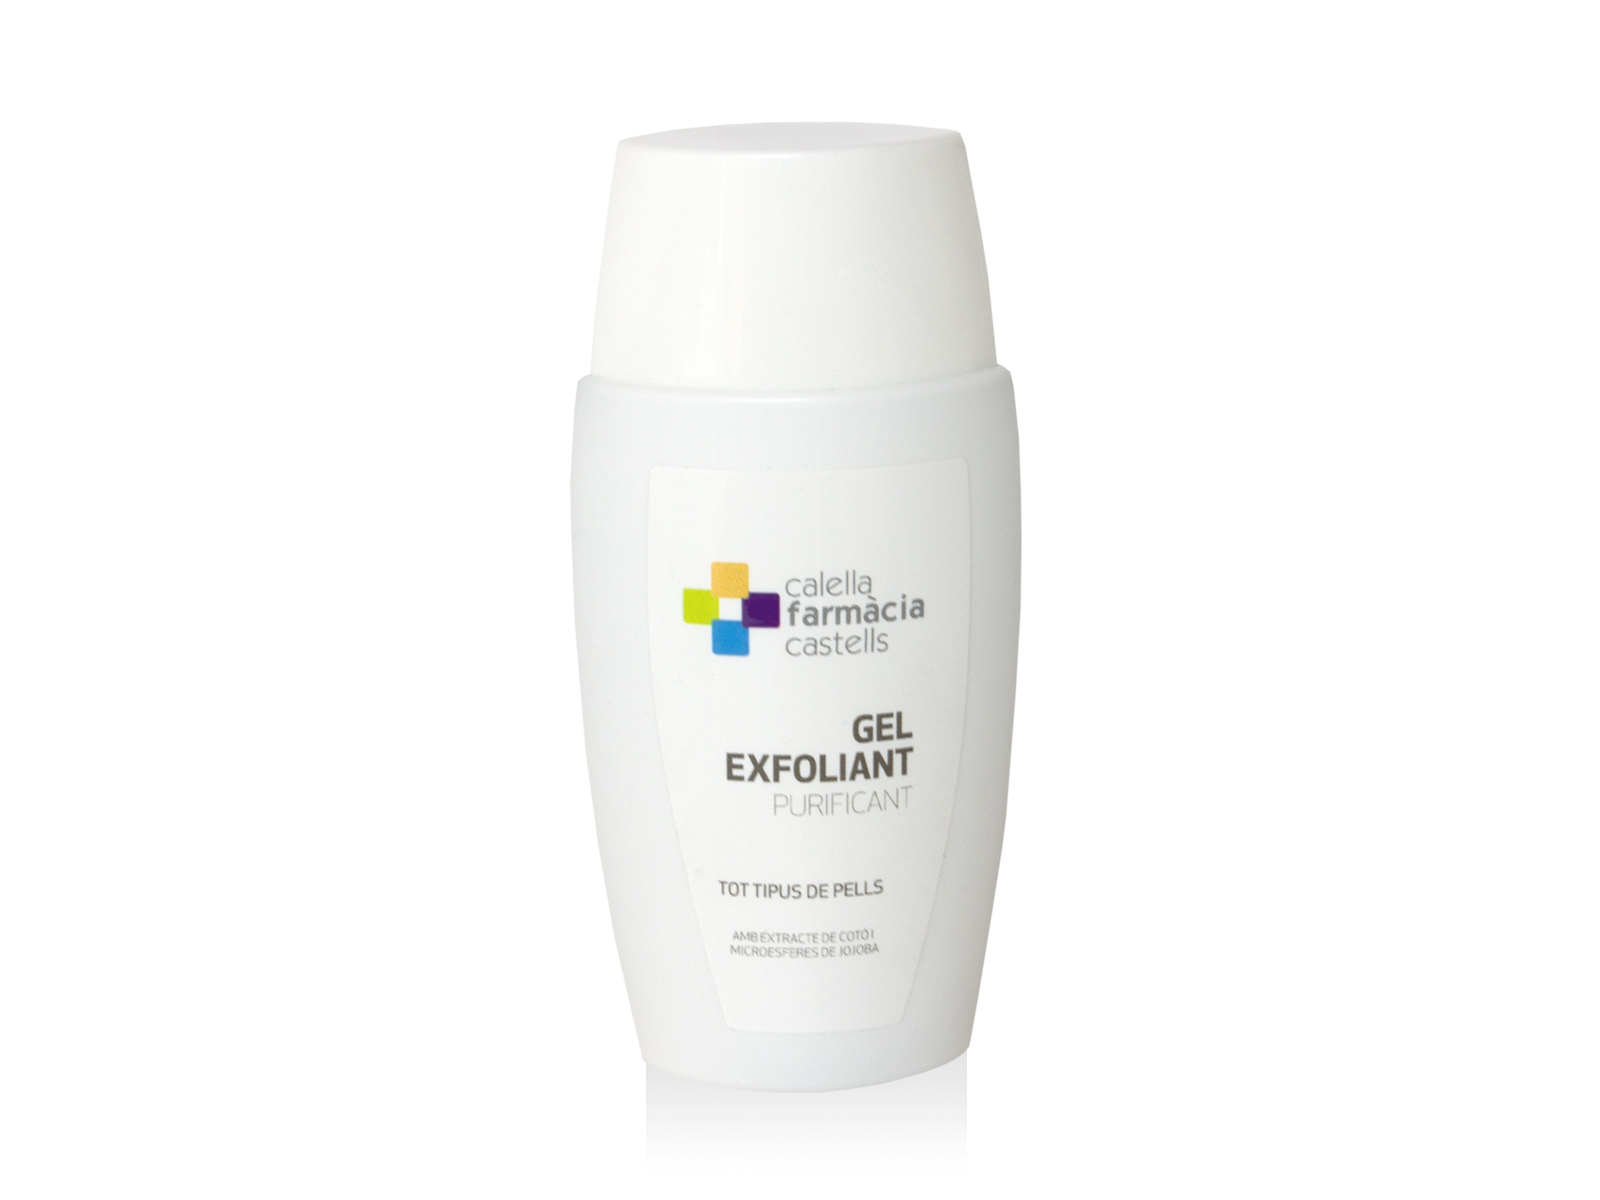 Gel exfoliant purificant